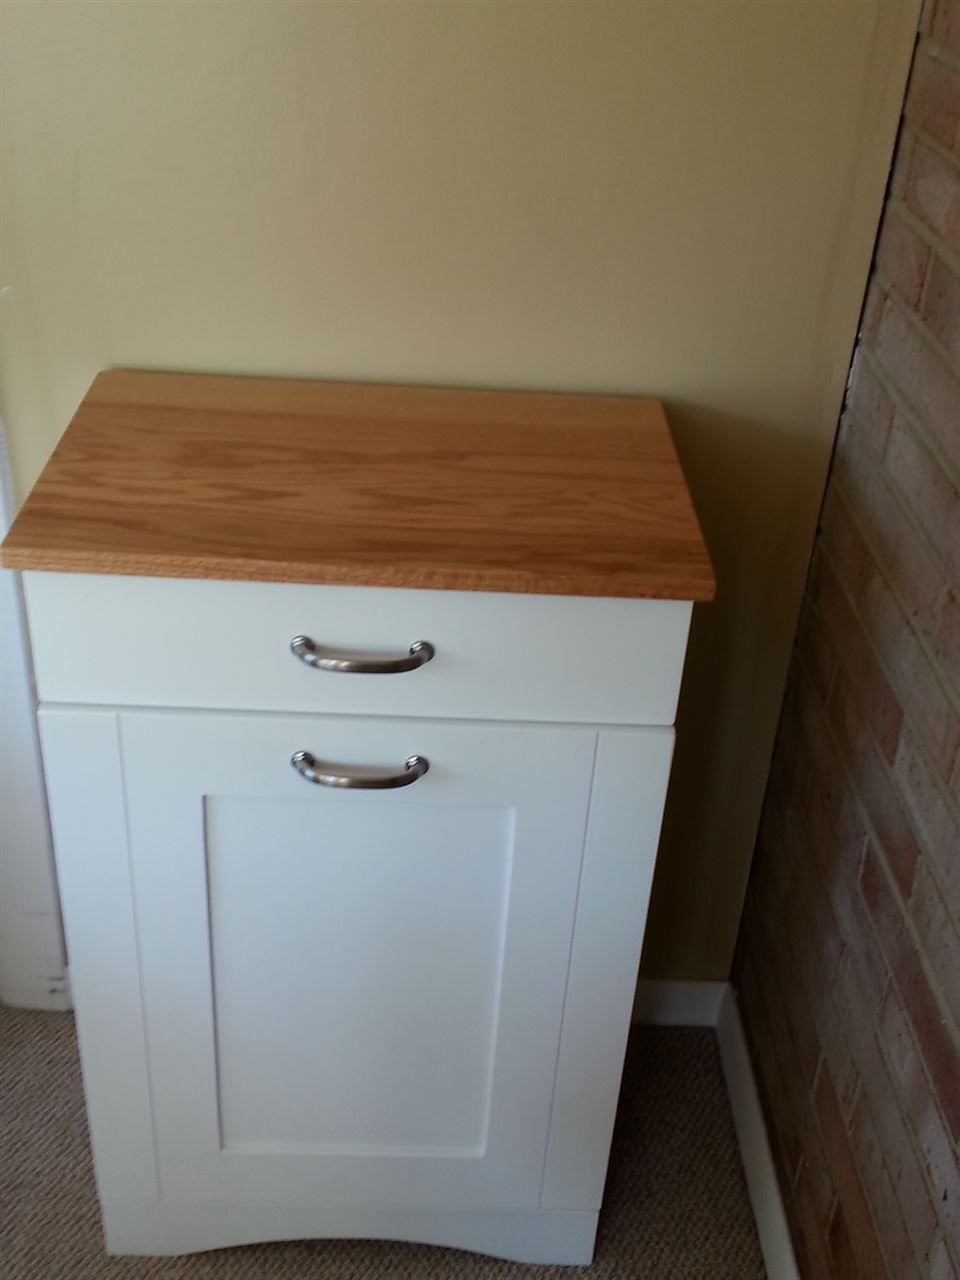 Picture of Two tone tilt out trash bin | Ideas for the House ...